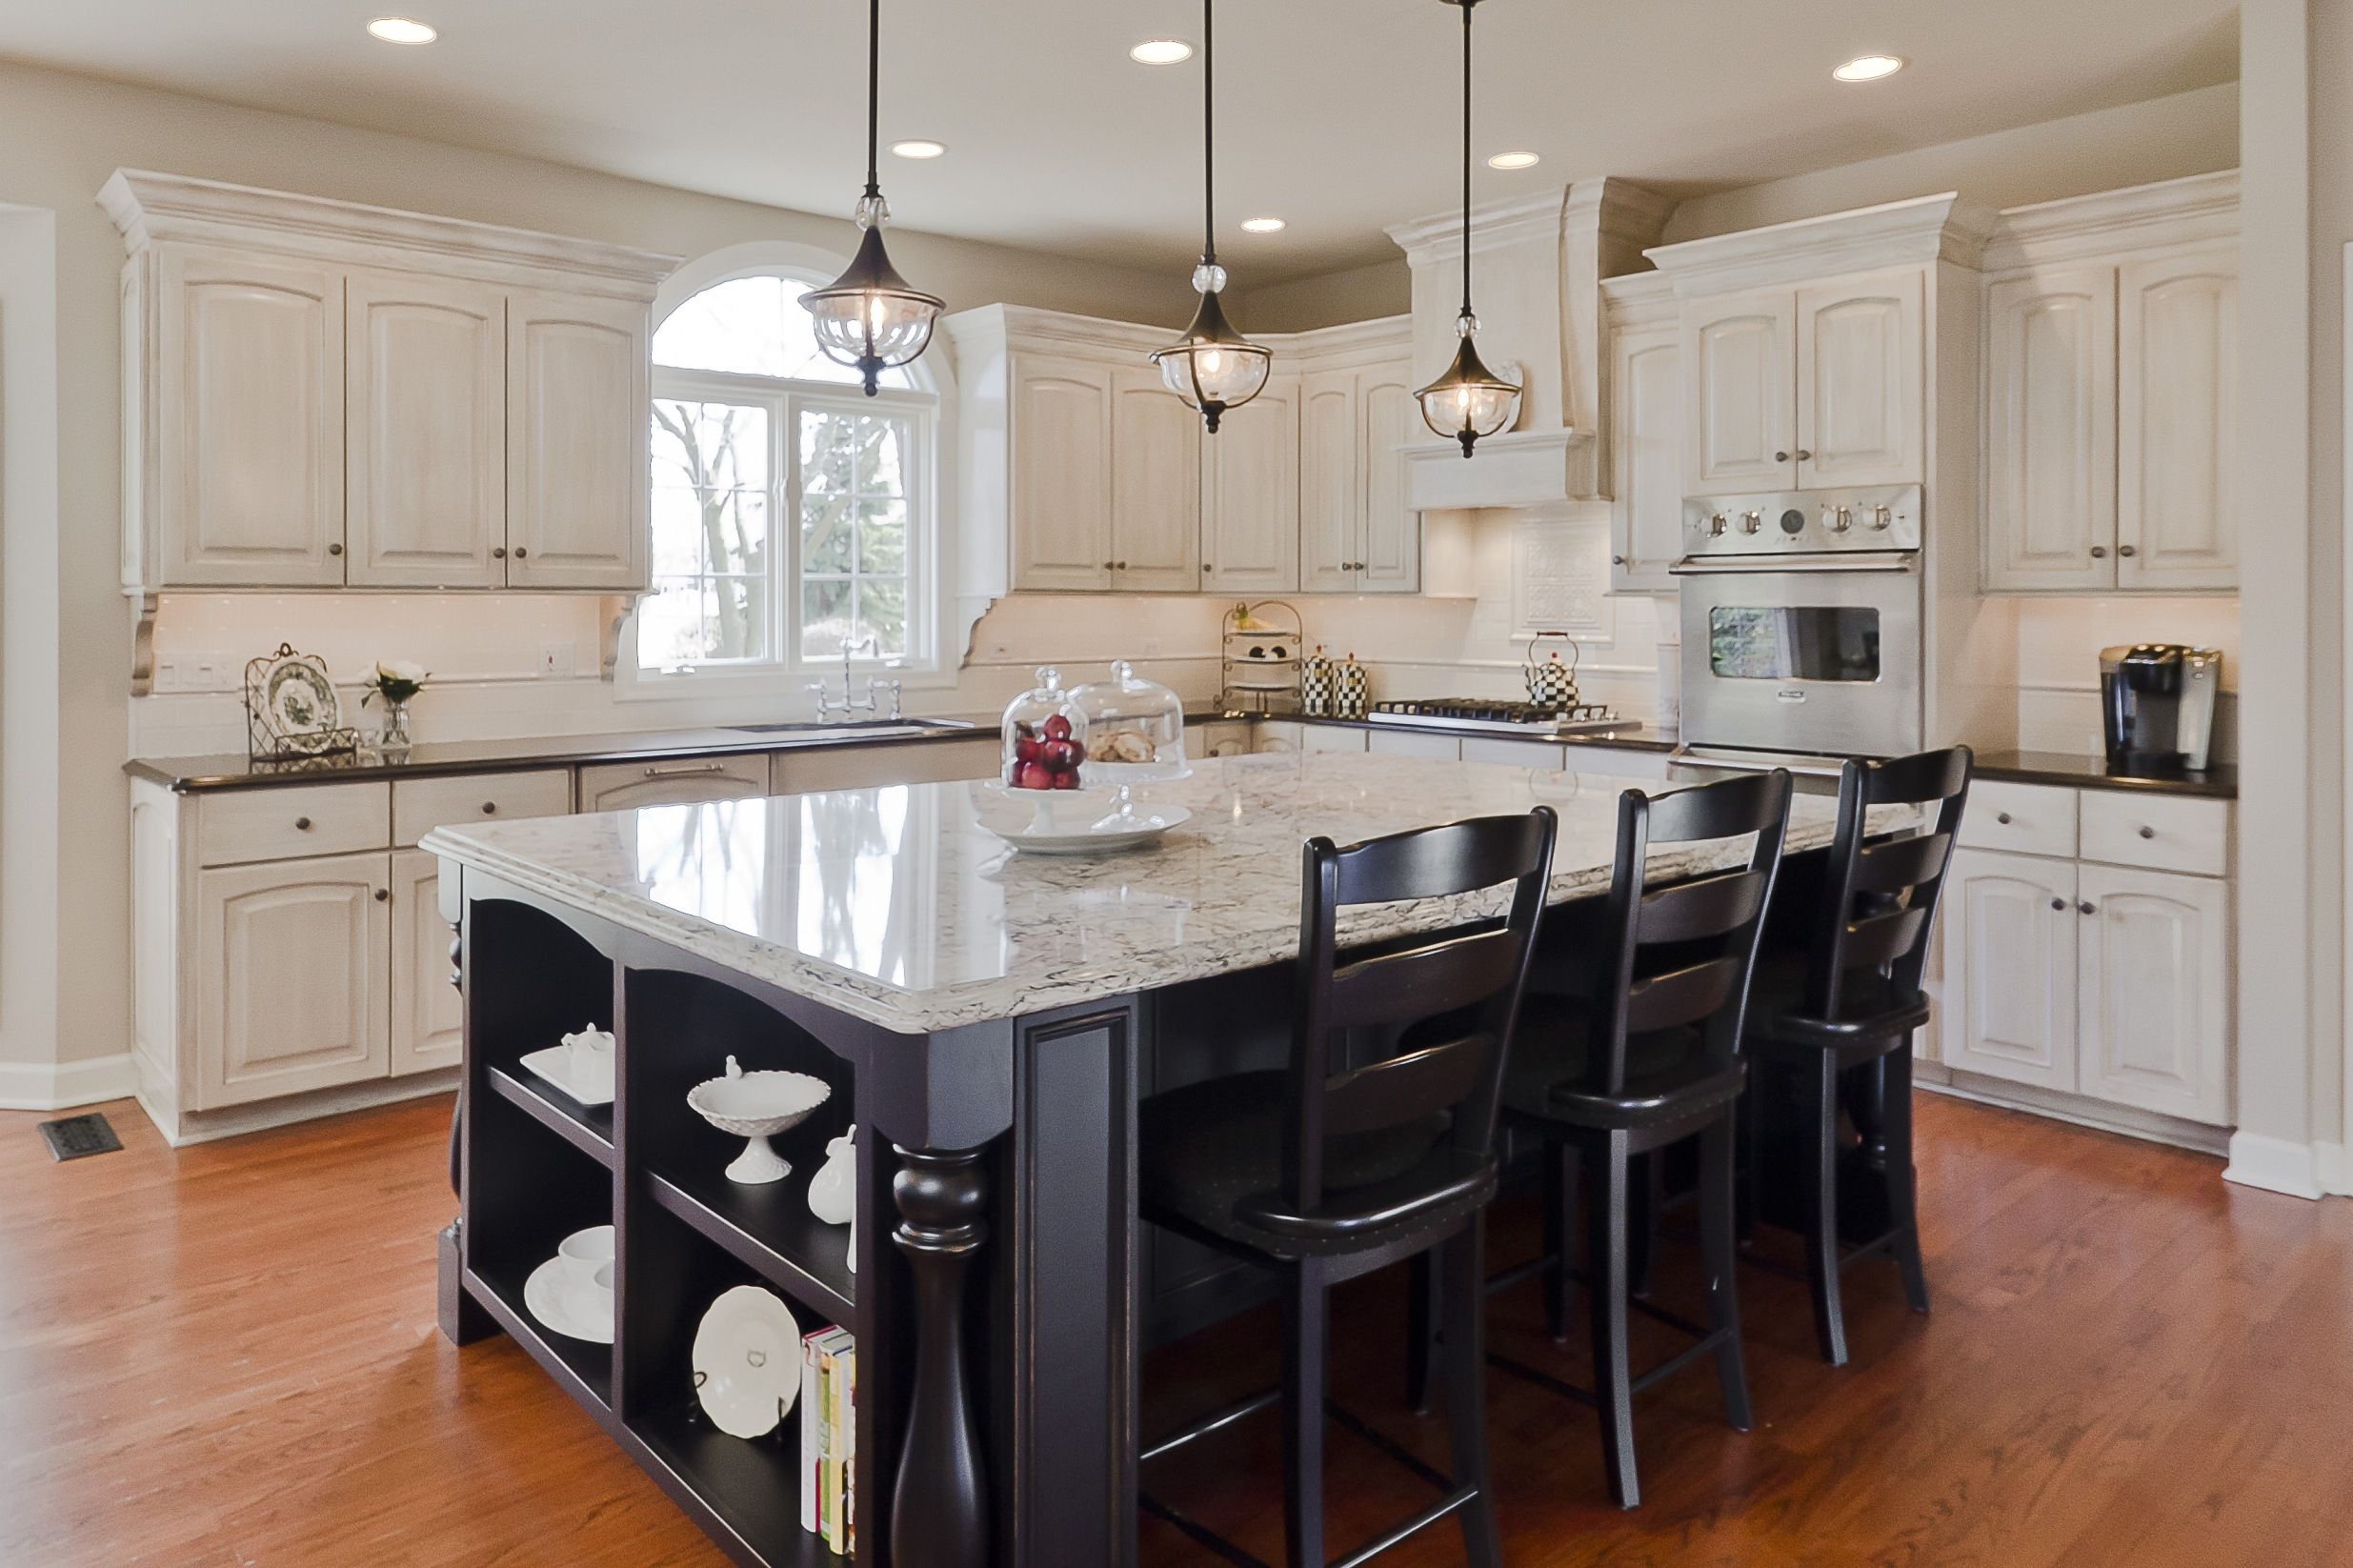 Kitchen Island With Granite Top And Seating Black Kitchen Island Stylish Kitchen Kitchen Island With Seating